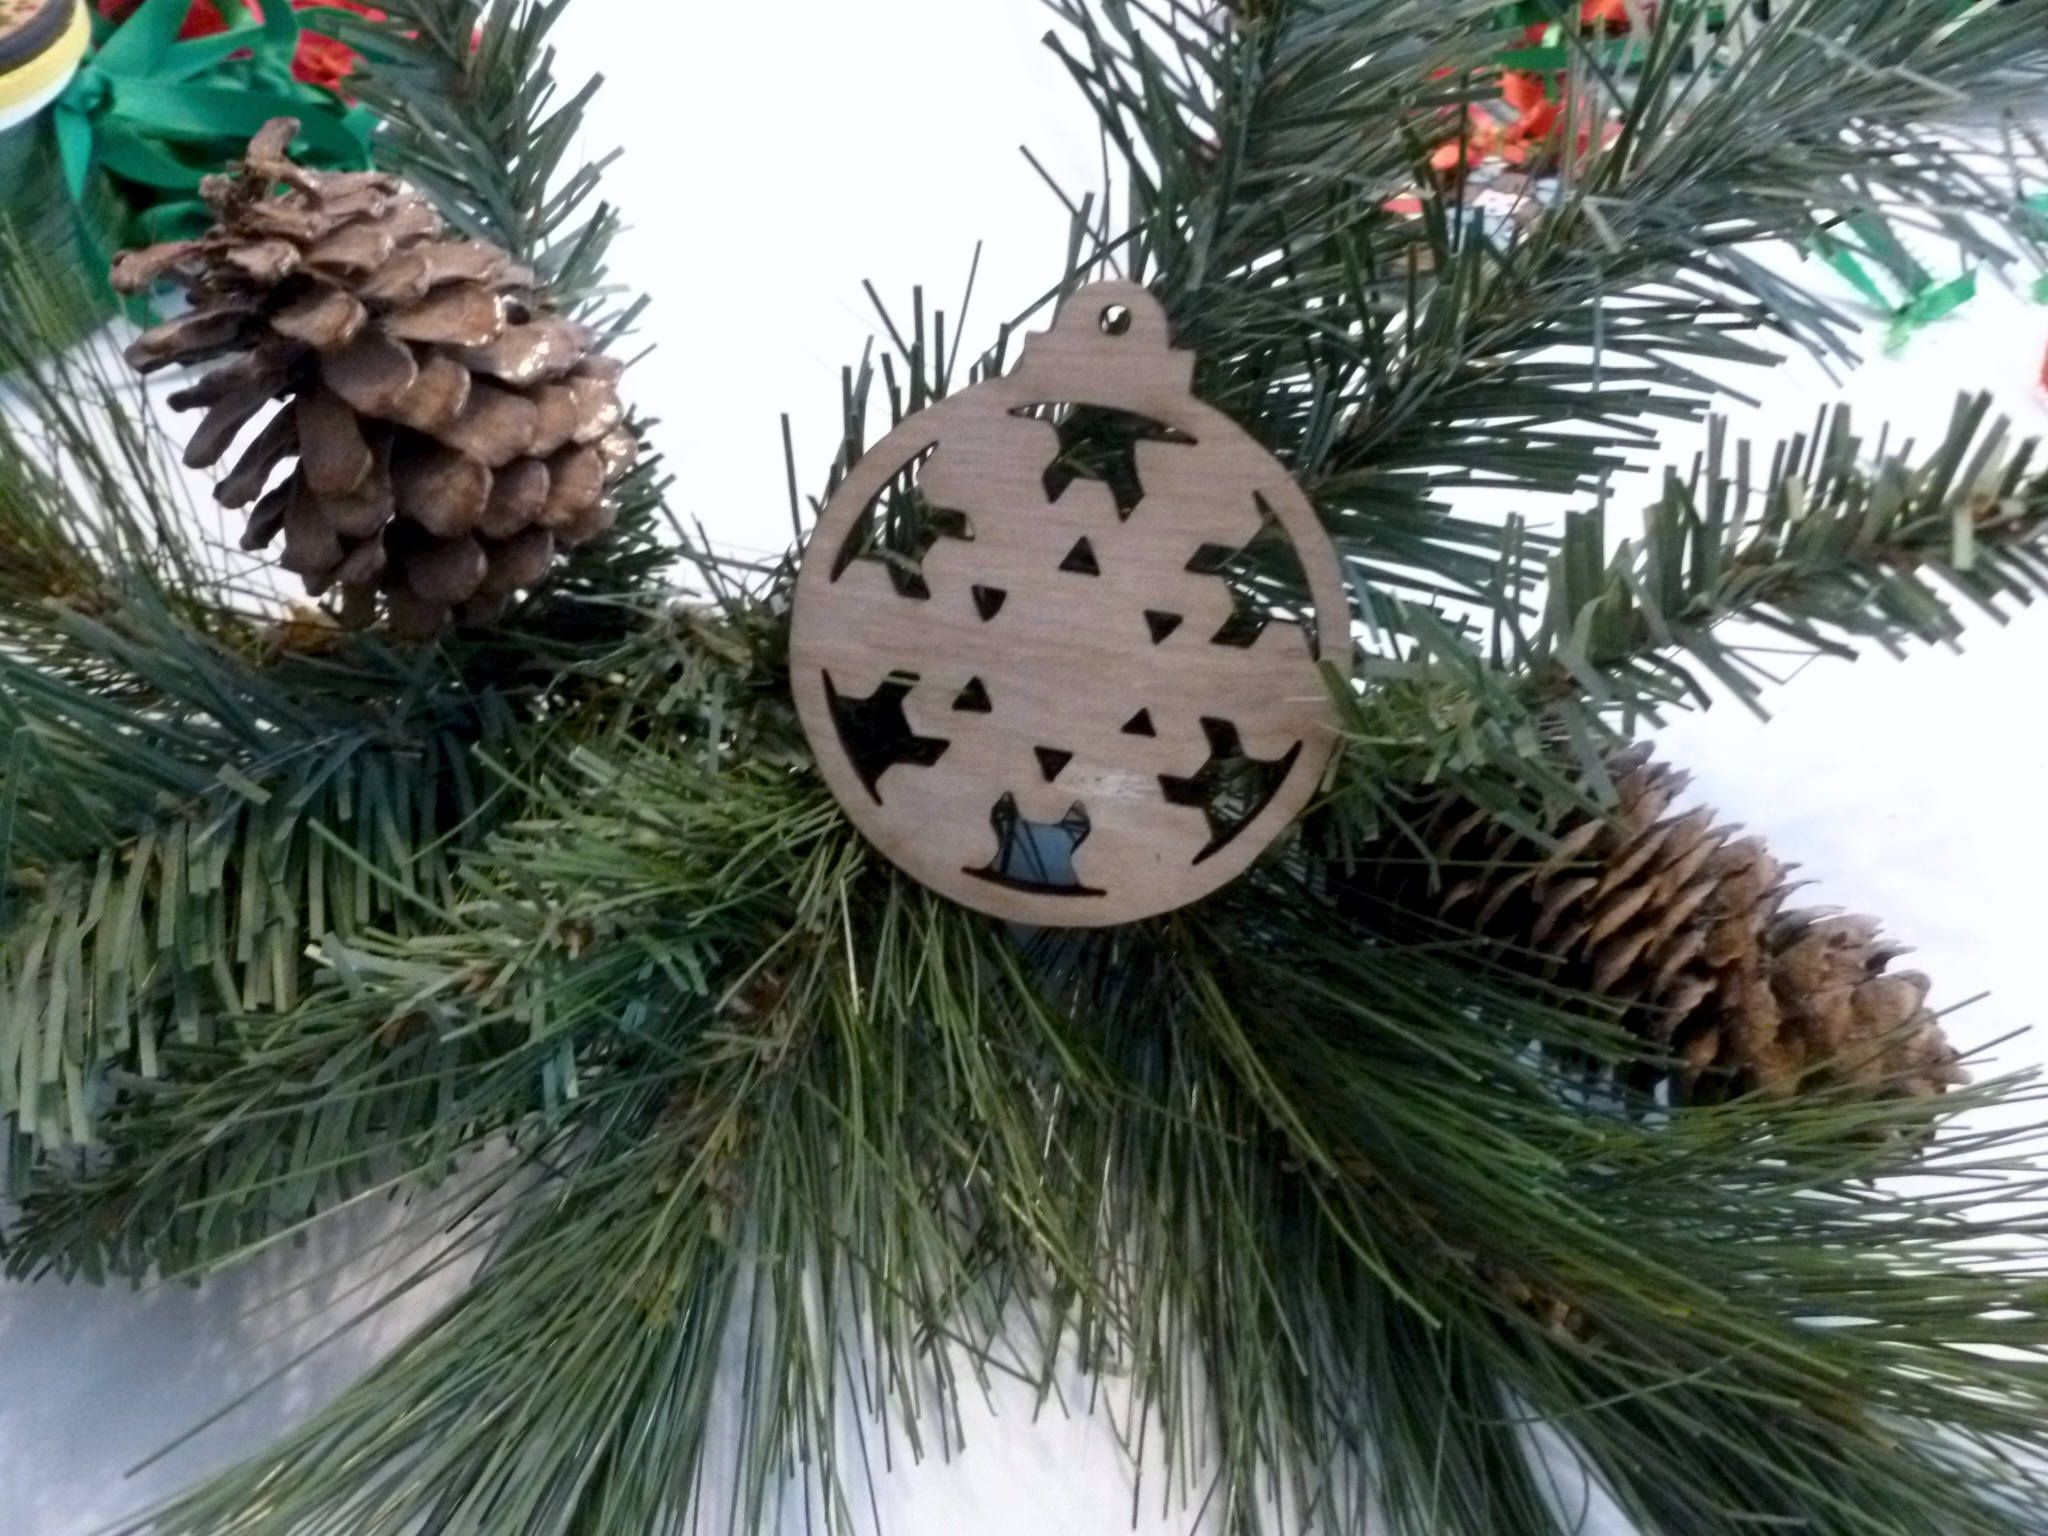 Handmade Christmas tree wood ornament. This Xmas tree ornament is ready for your touch stain, varnish paint or glitter them 3 X 2 1/2 inches by ShelbyLaser on Etsy